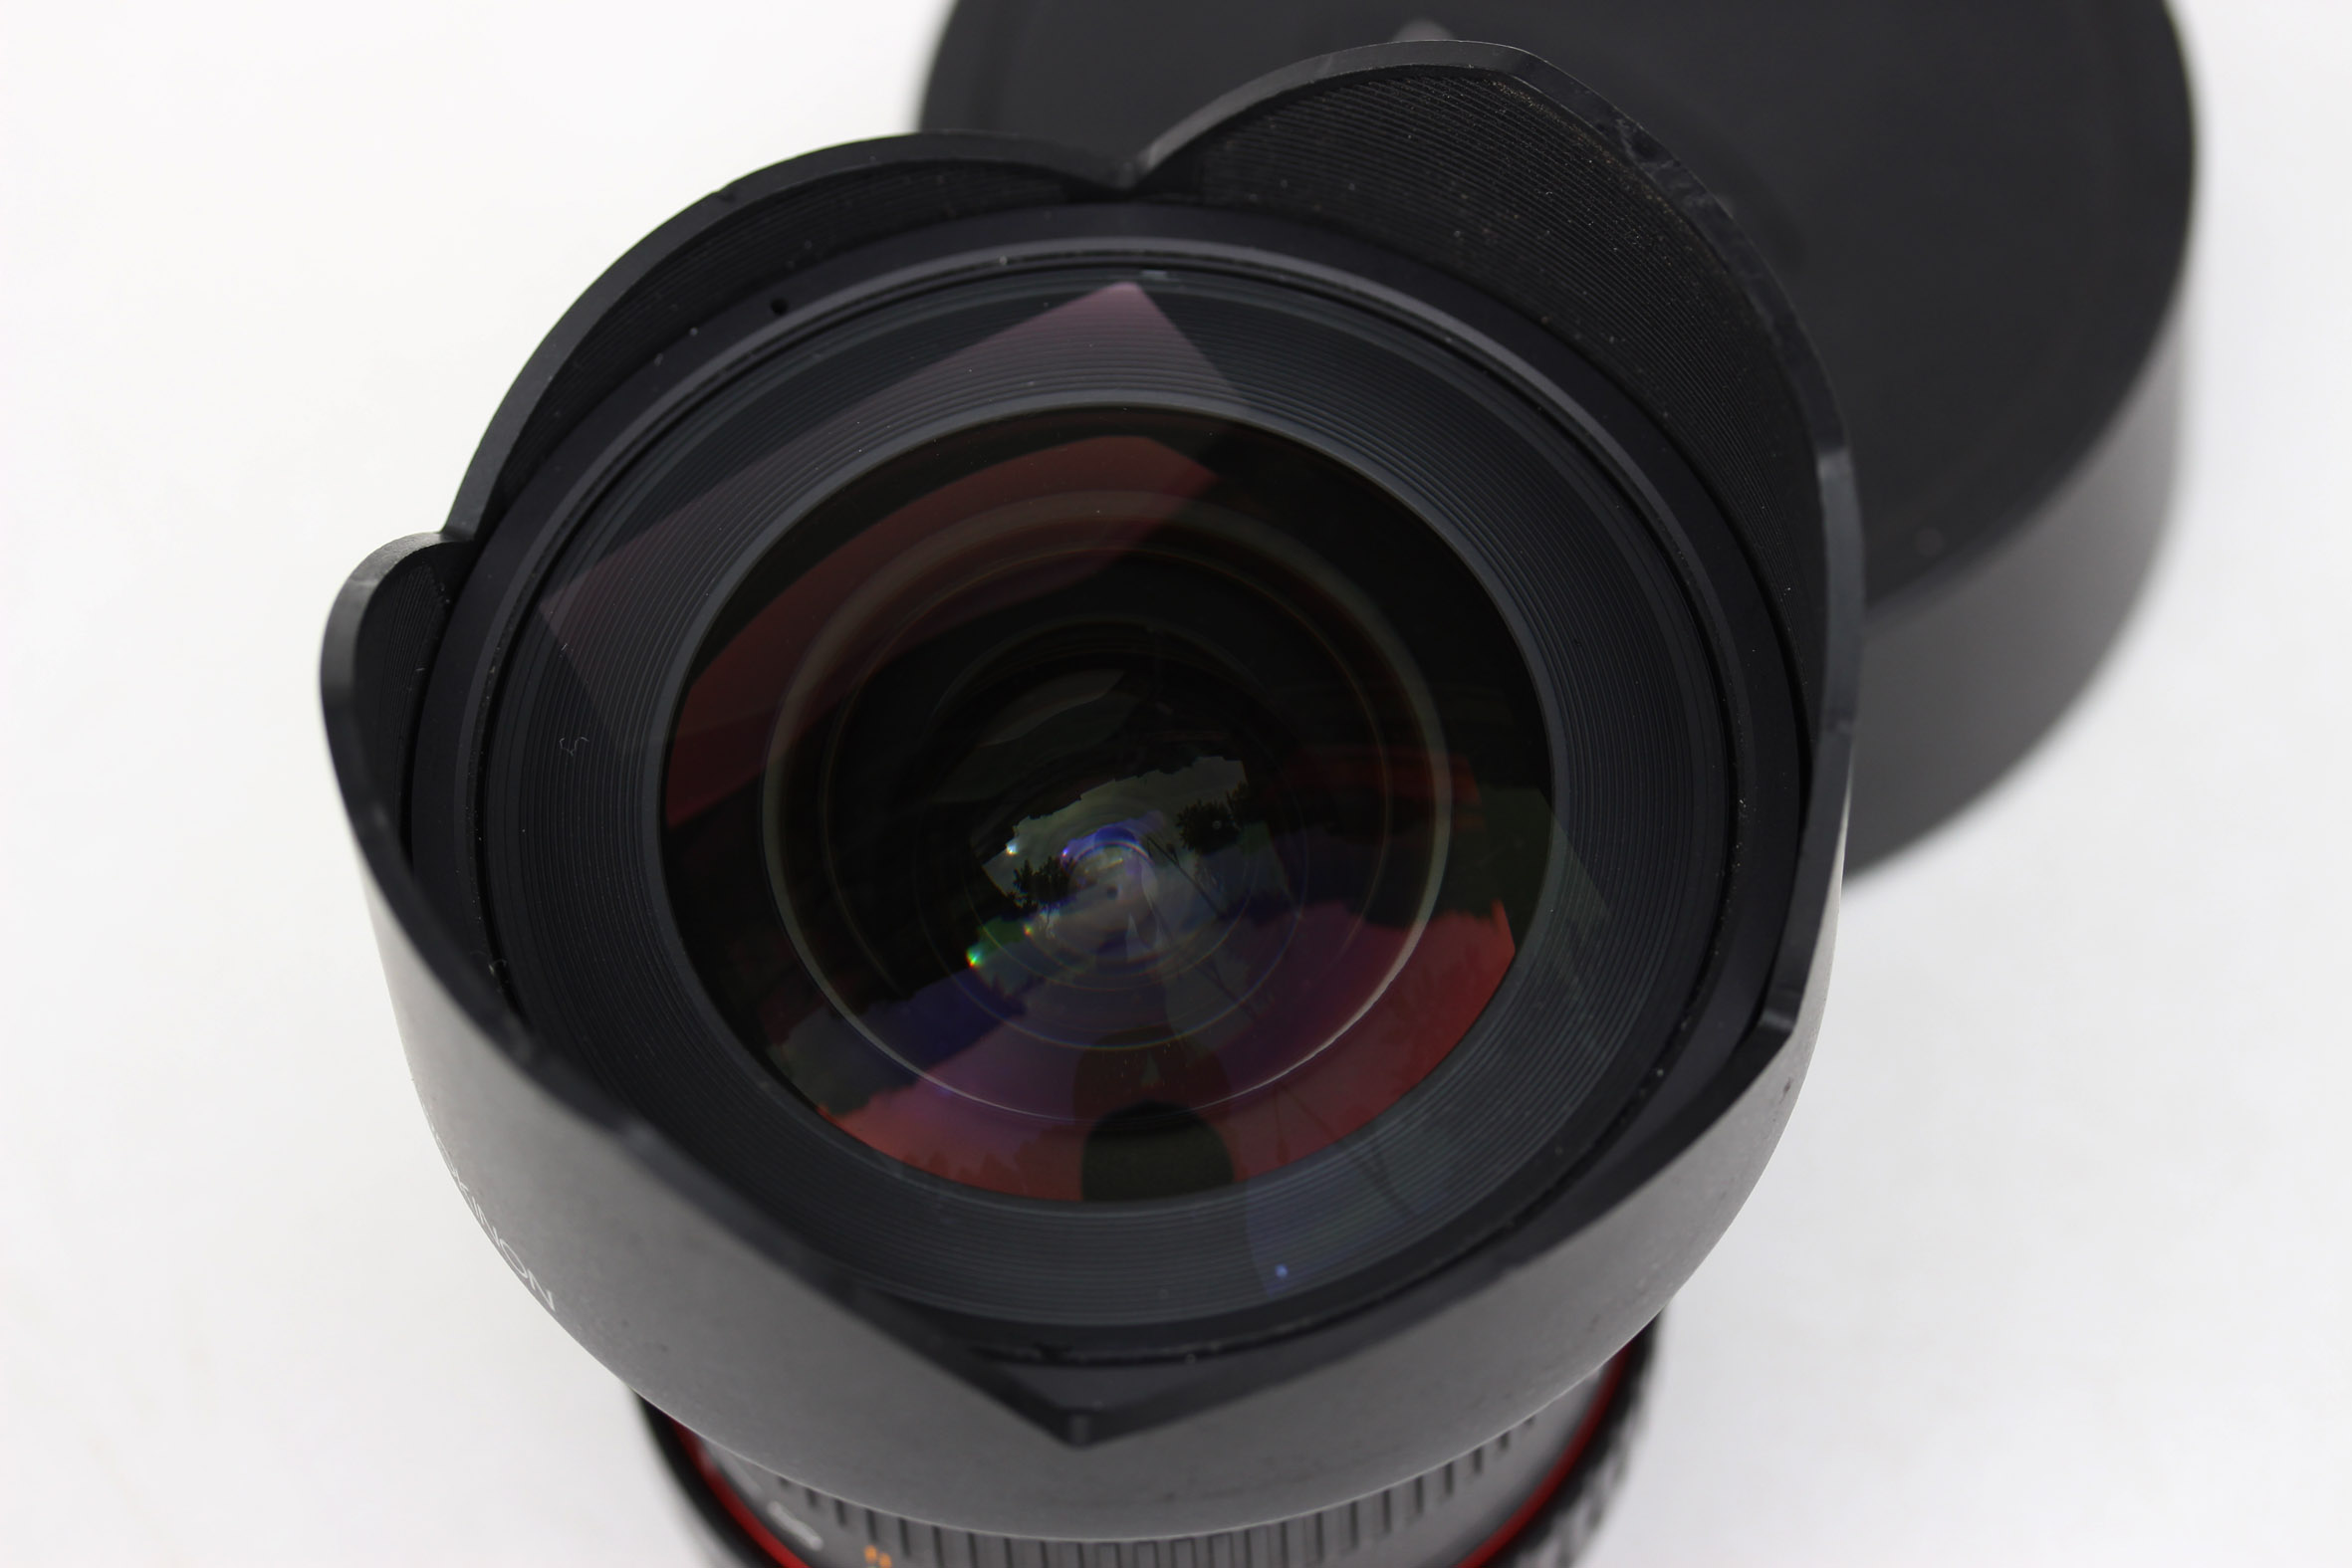 Rokinon 14mm f/2.8 IF ED UMC Lens For Canon / Nikon